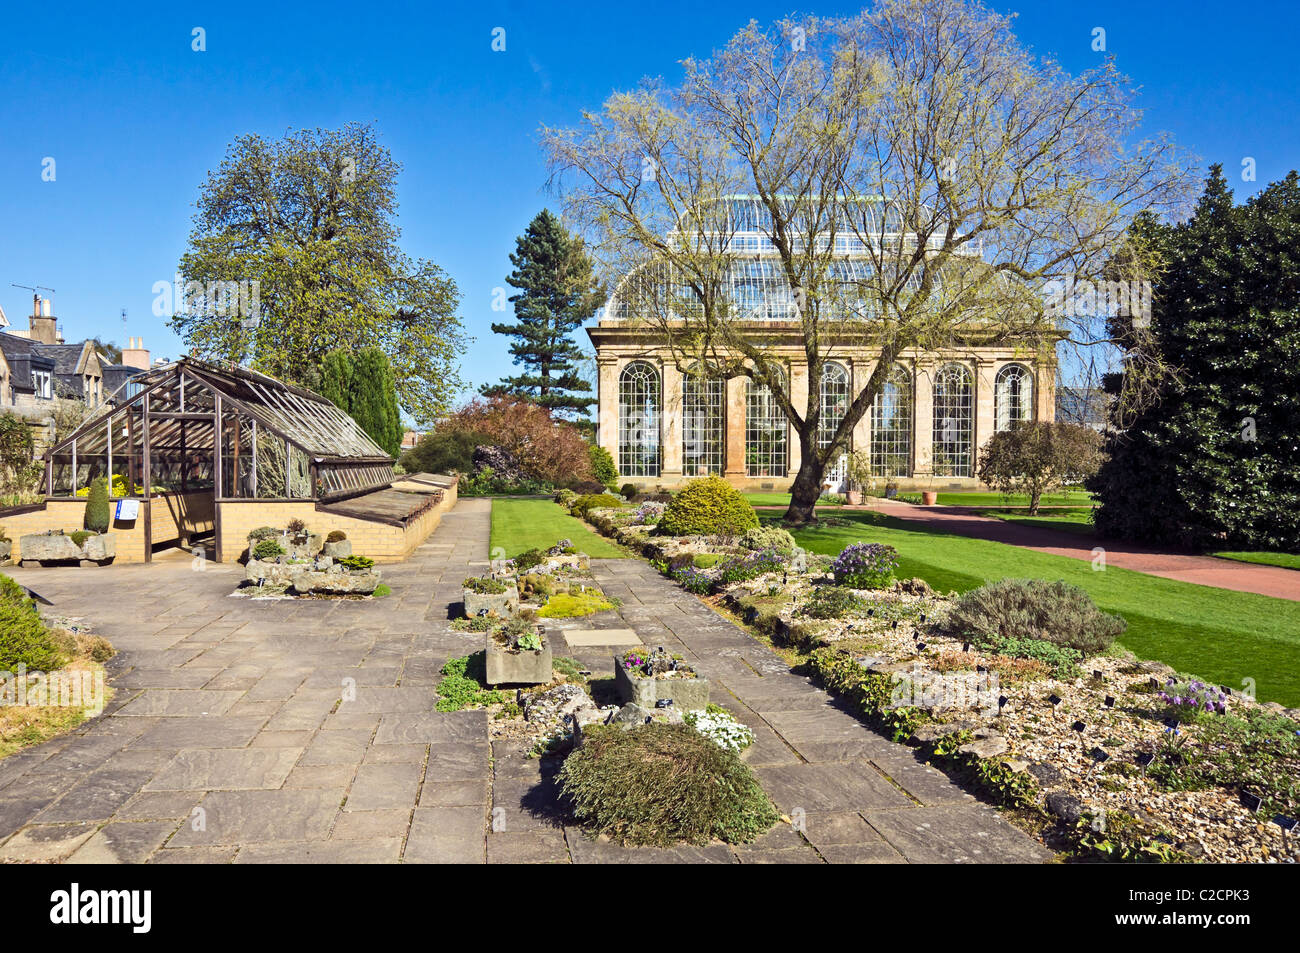 Alpine House and courtyard in front of Palm House in The Royal Botanic Garden in Edinburgh Scotland - Stock Image